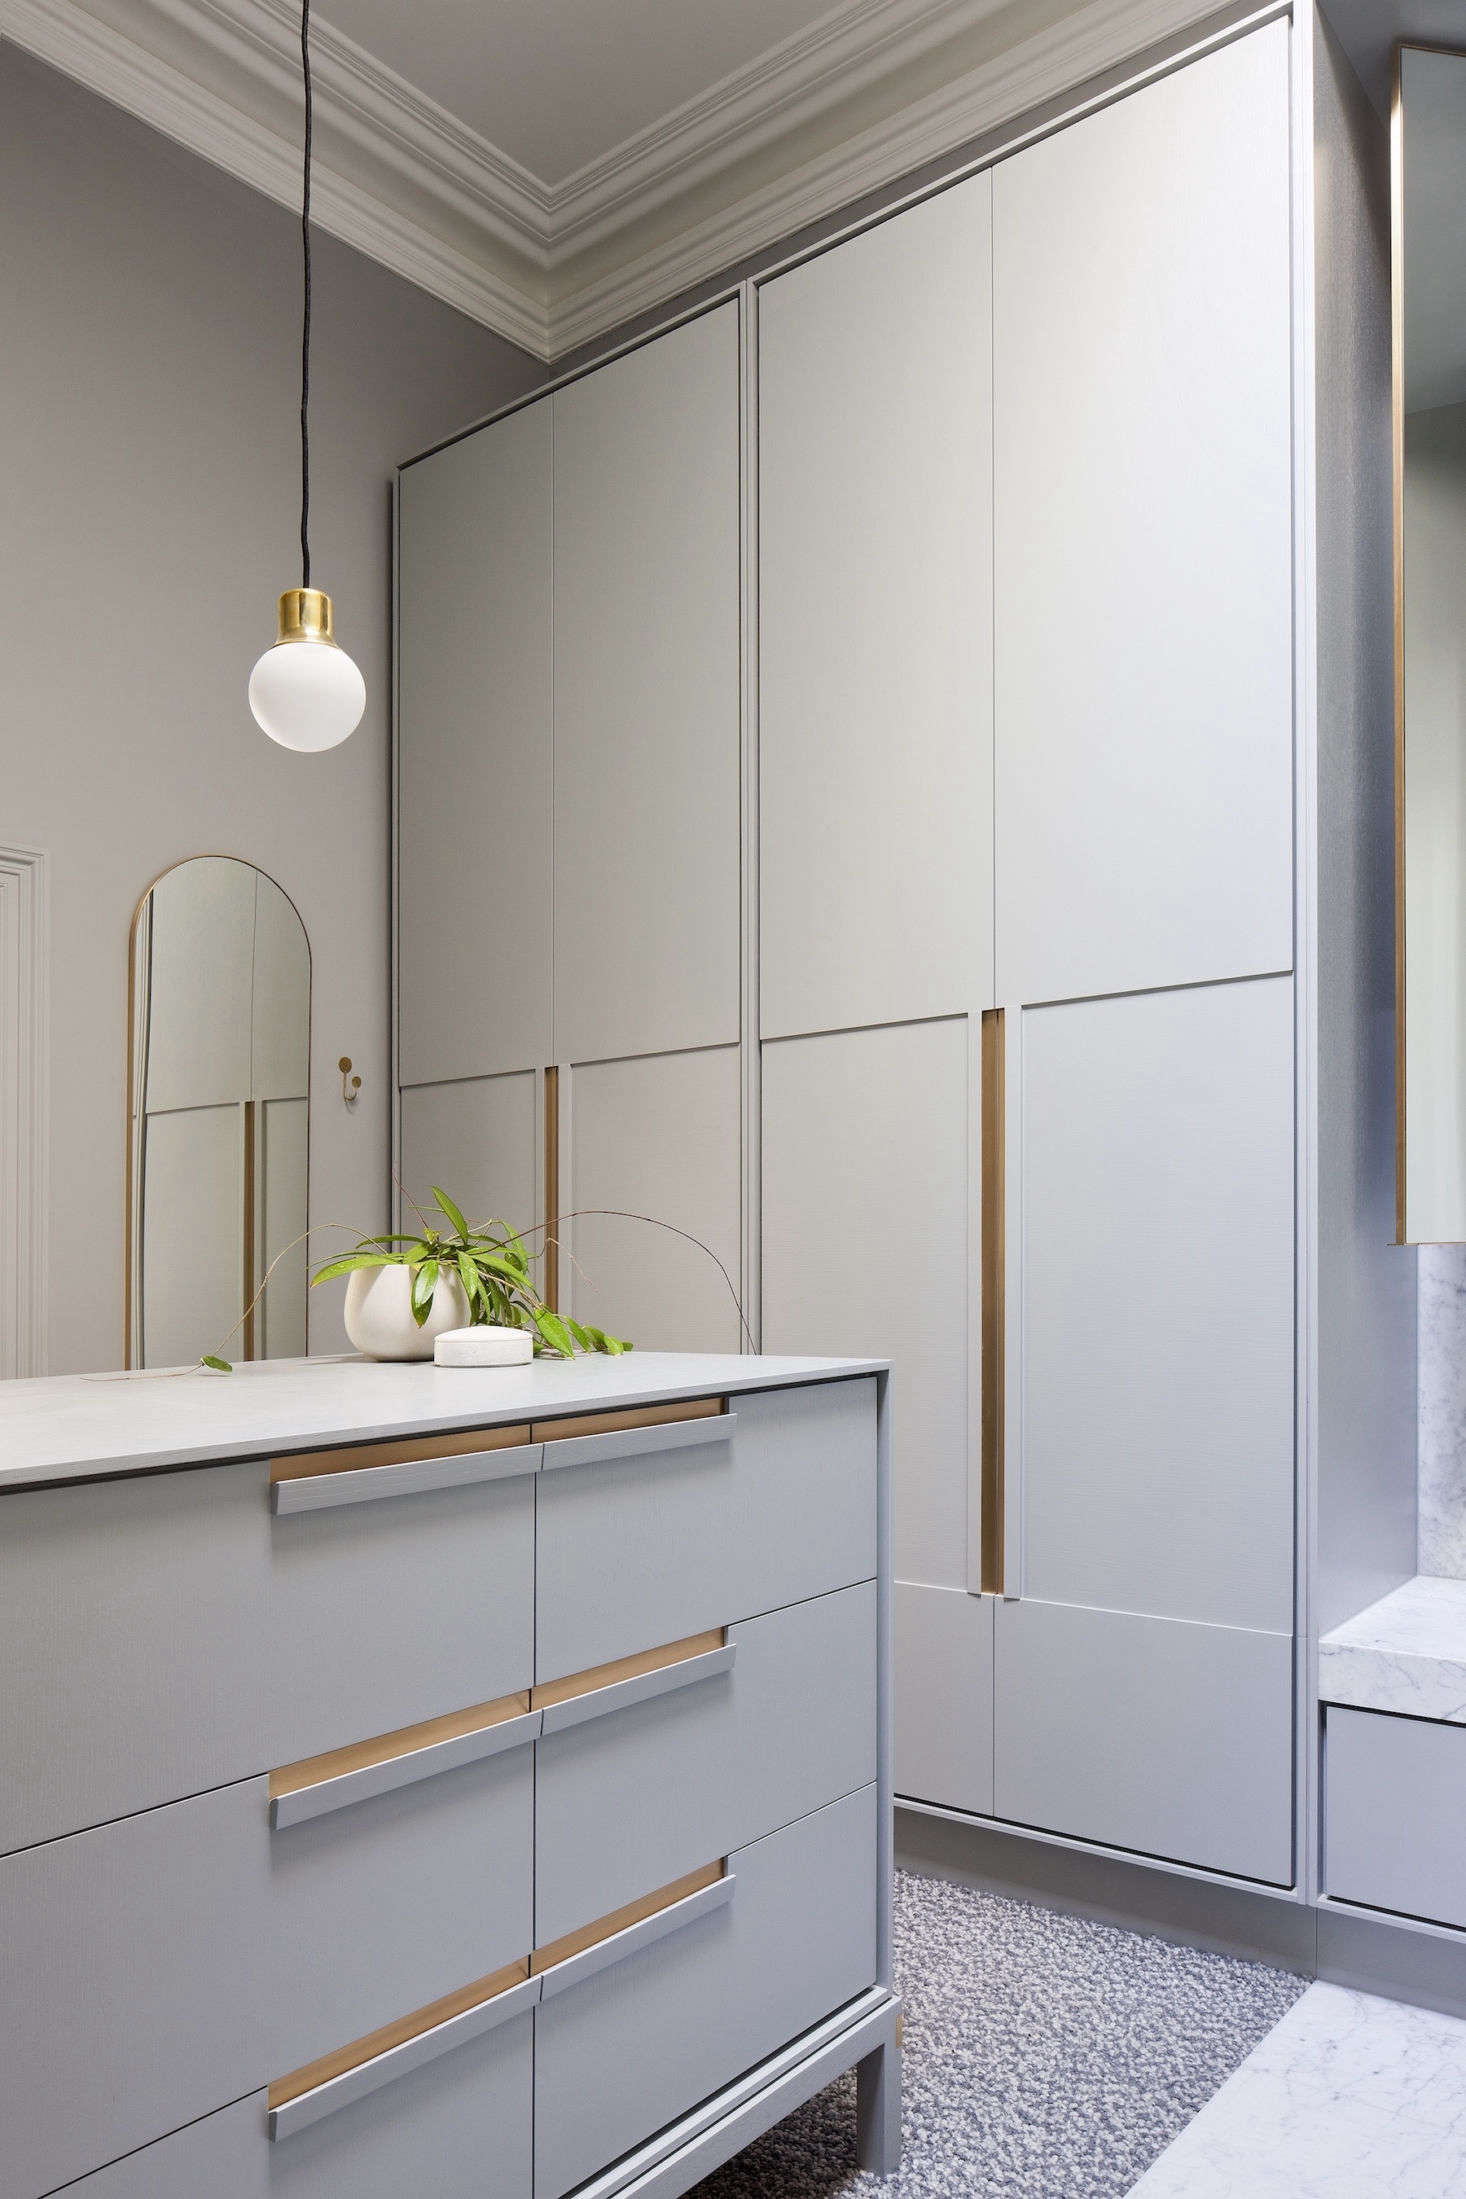 A large walk-in closet comprises the other half of the en suite master bath.